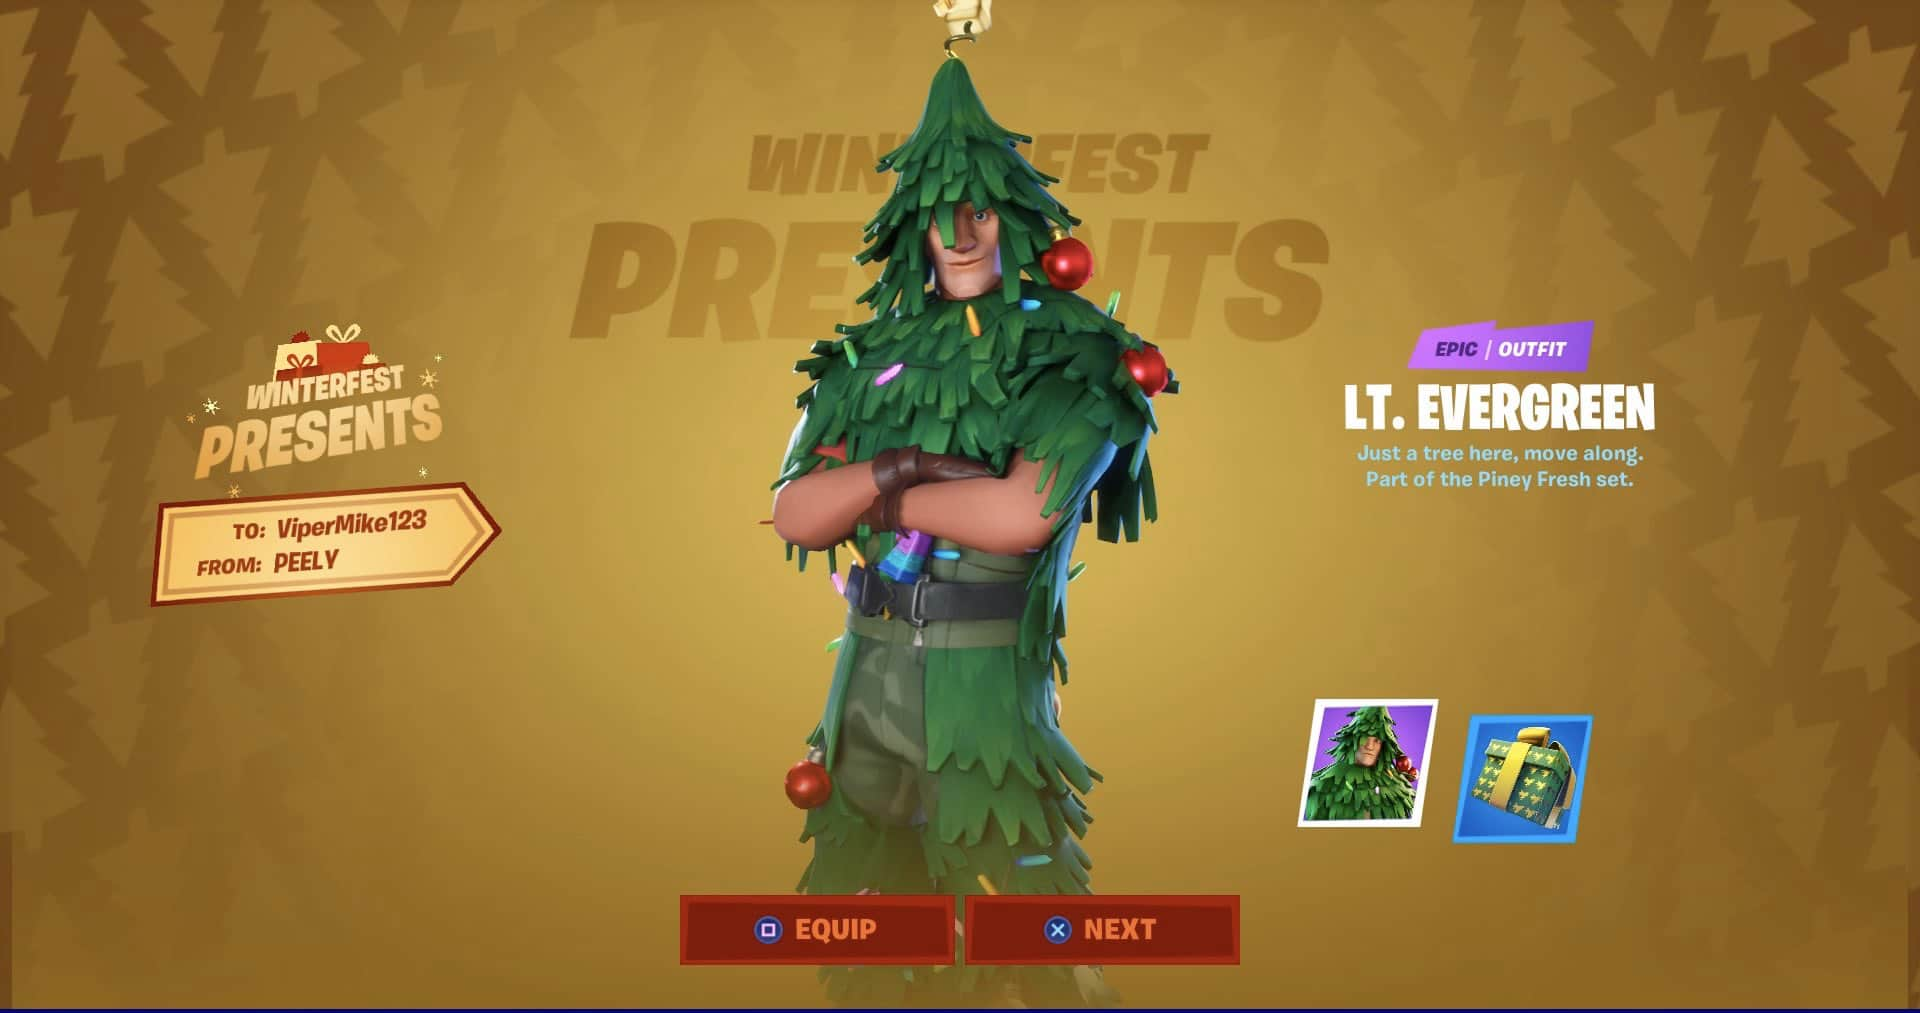 LT. Evergreen Fortnite skin